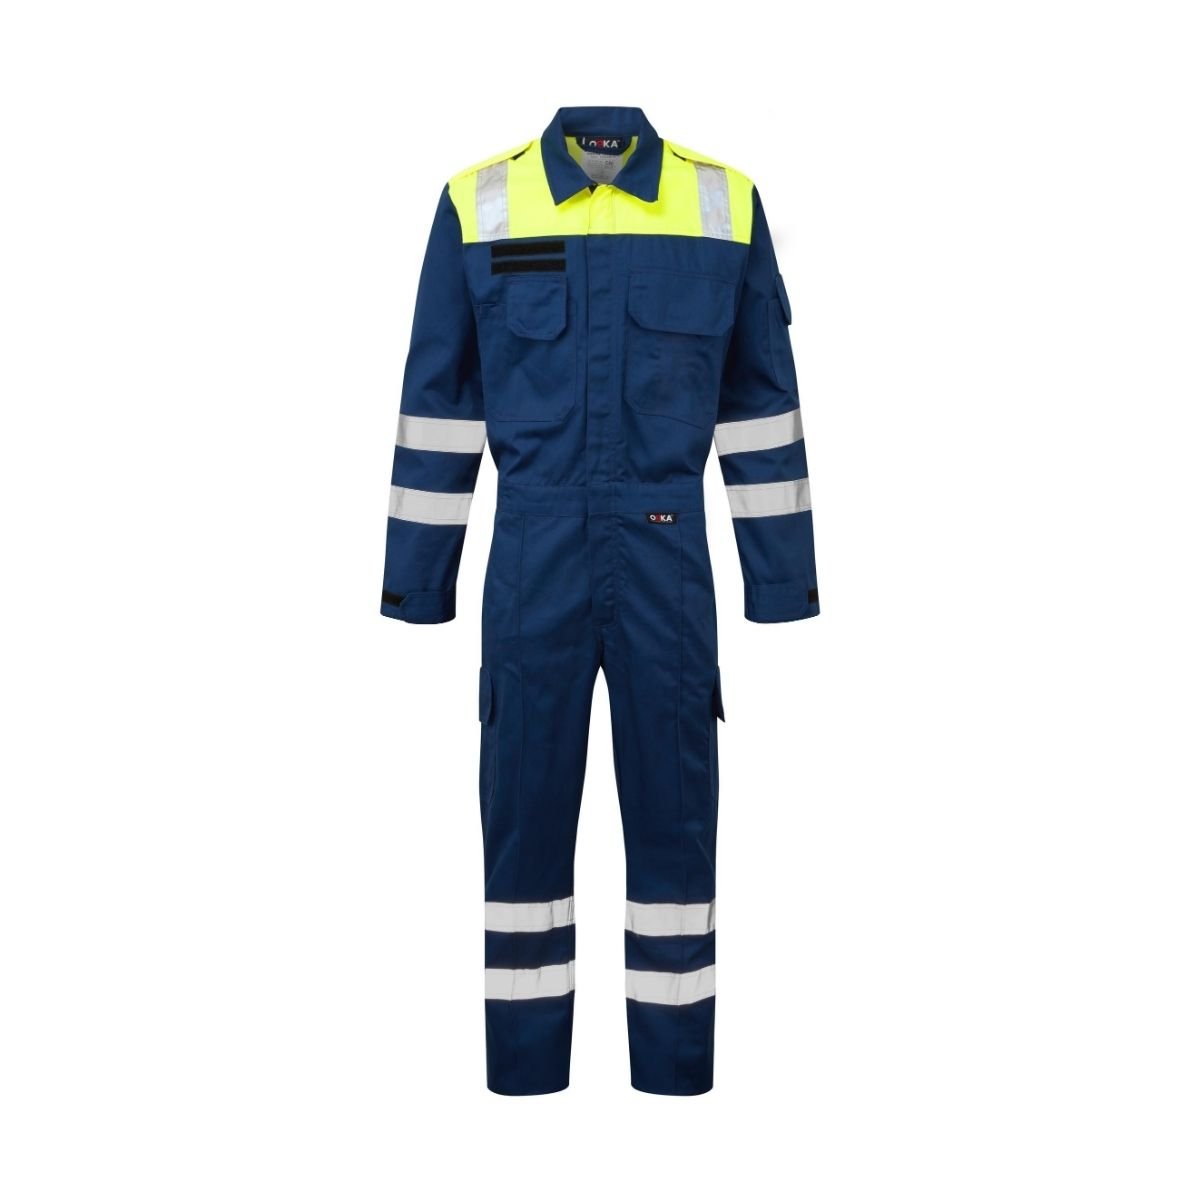 ORKA Mariner Two Tone Reflective Coverall - Navy-HVY